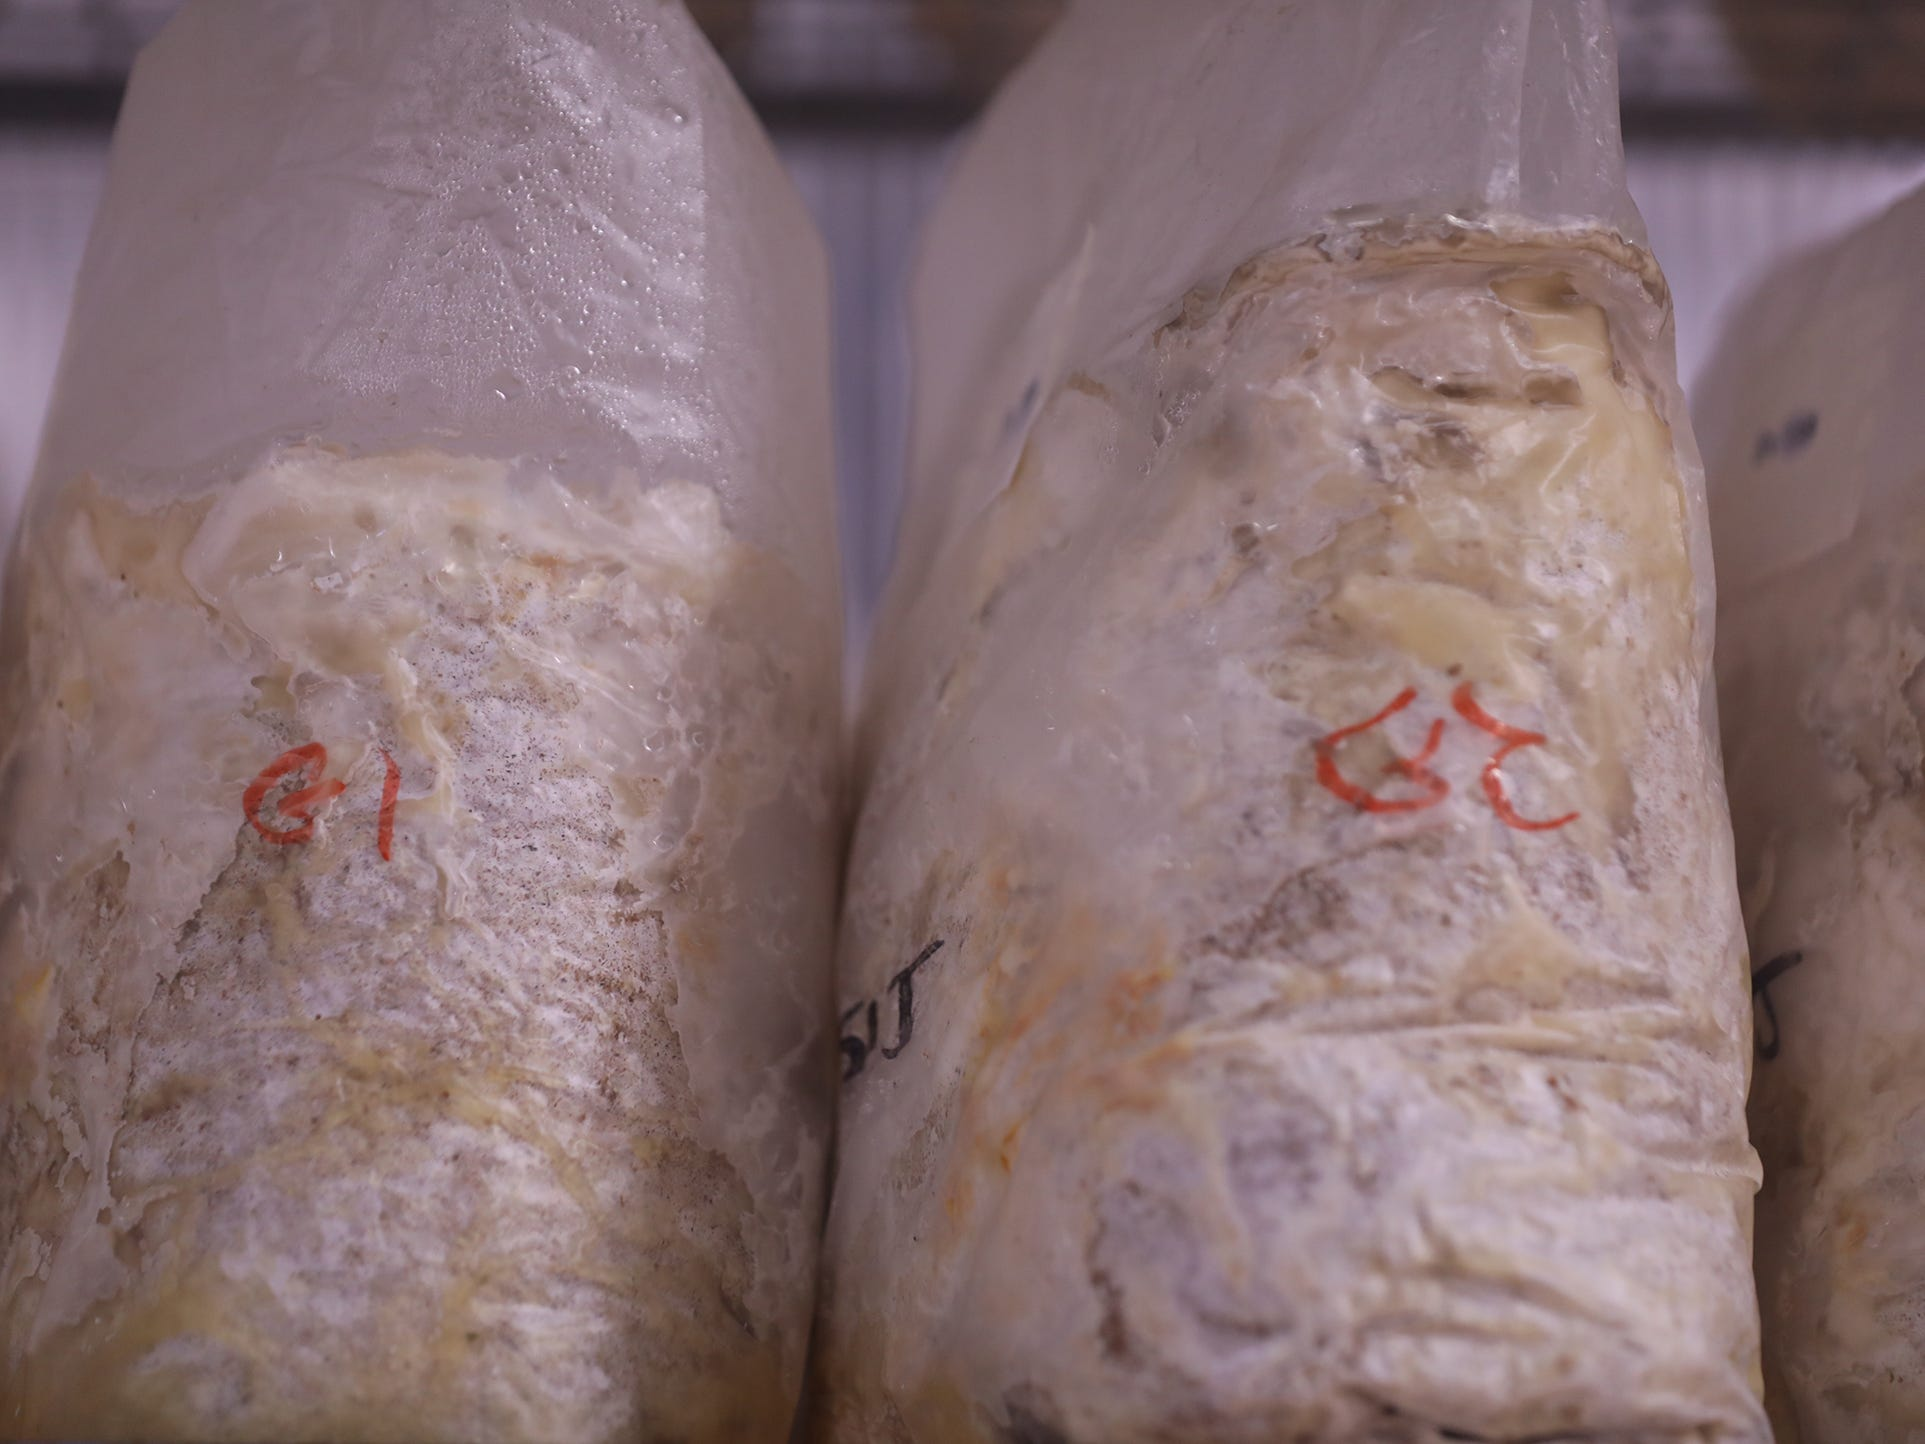 Mushrooms in various forms of growth in these grow bags.  They are just starting to take root inside the sawdust blend.